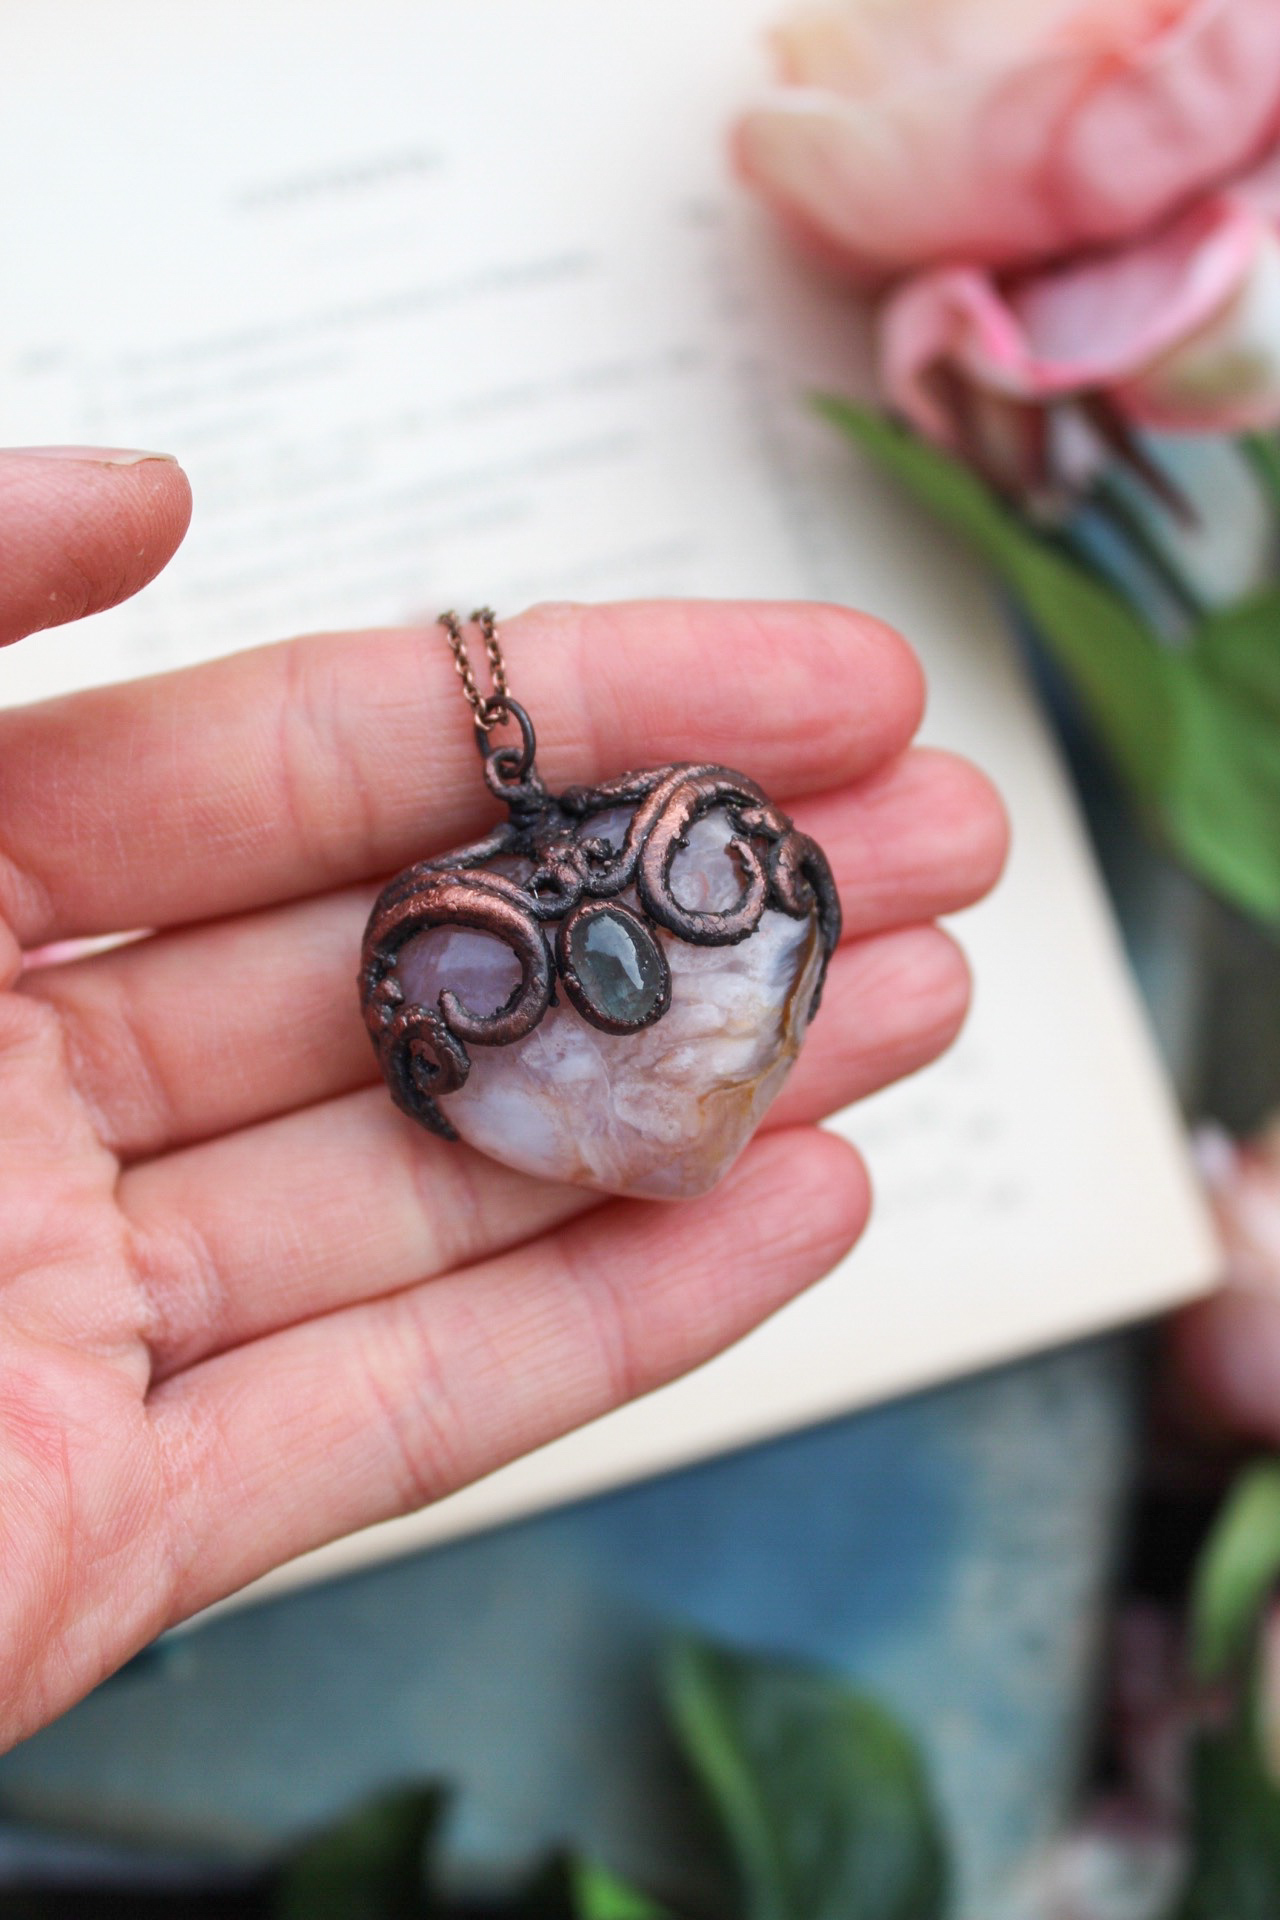 Heart Shaped Blush Blossom Agate Necklace with Tourmaline